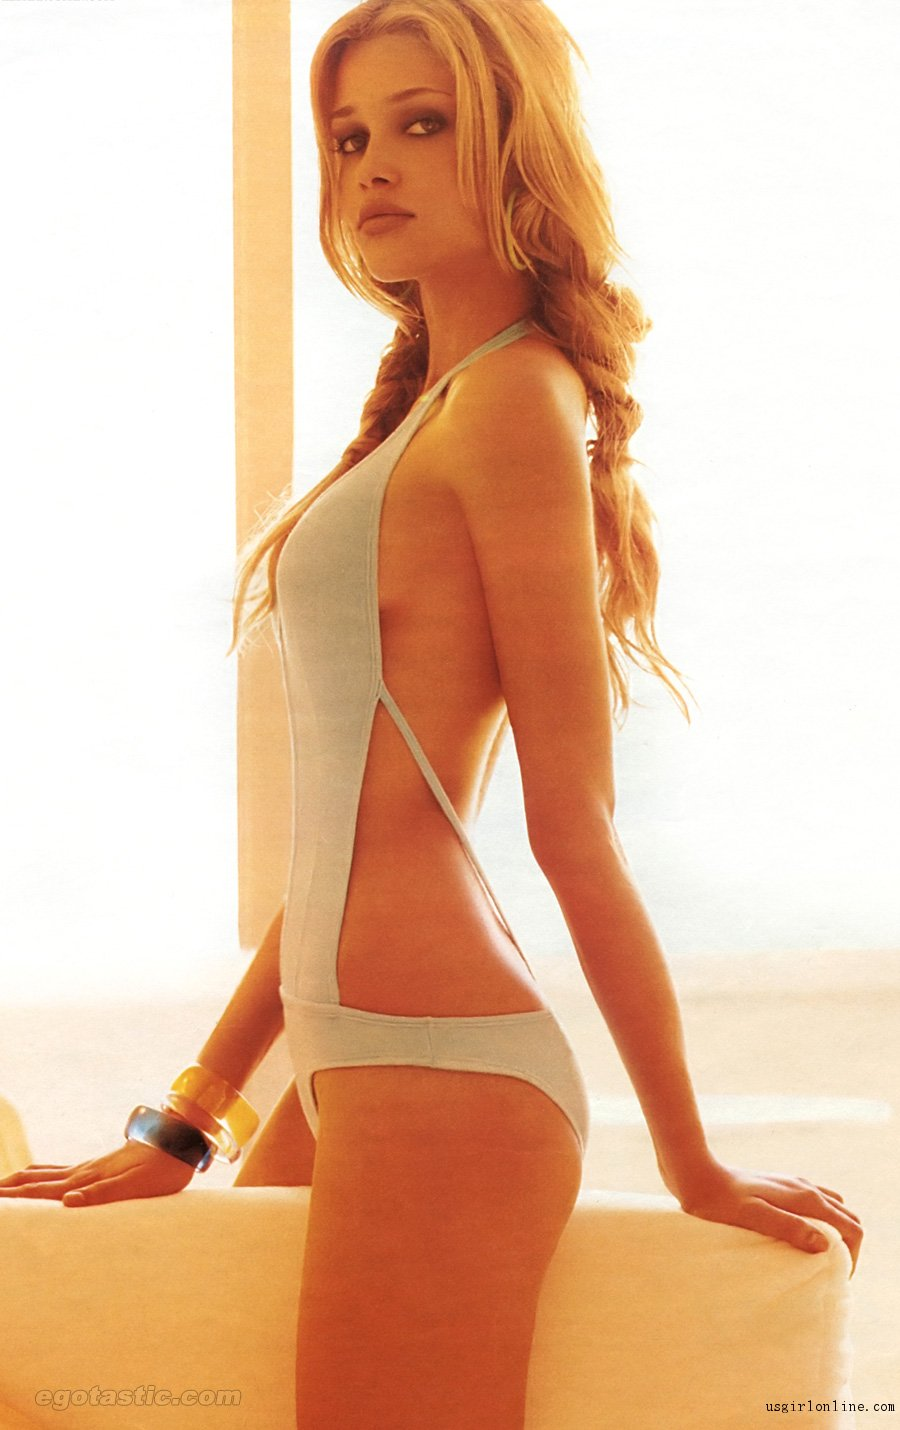 ana beatriz barros hot bikni wallpapers and pictures best